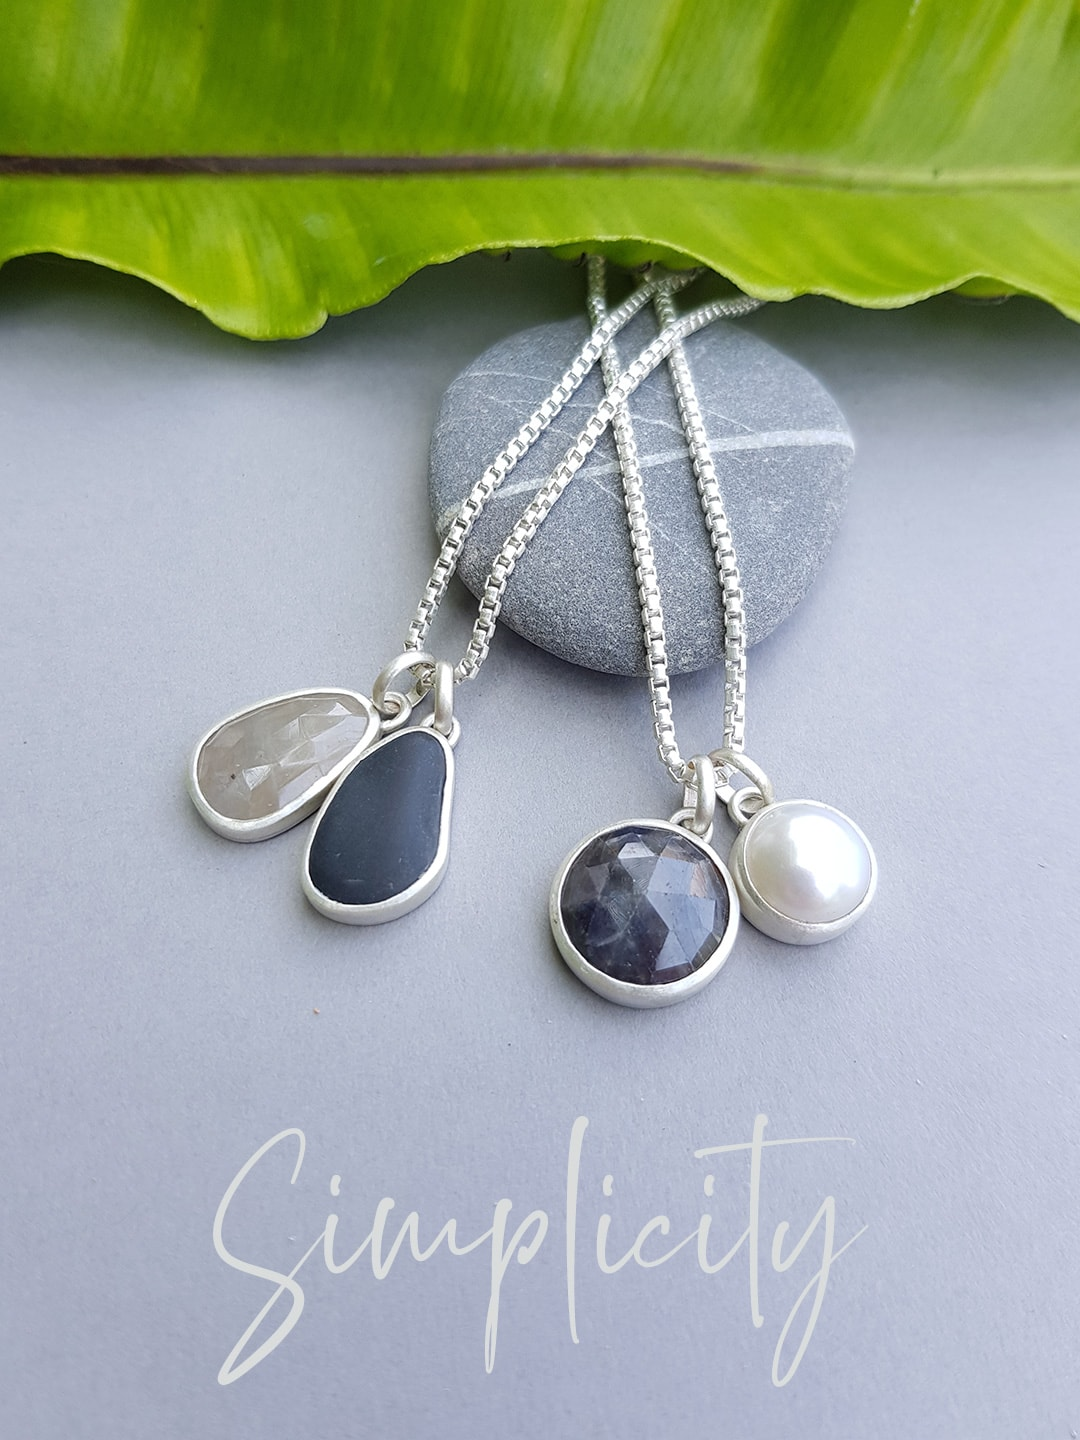 Simplicity pendants with pebbles and sapphires